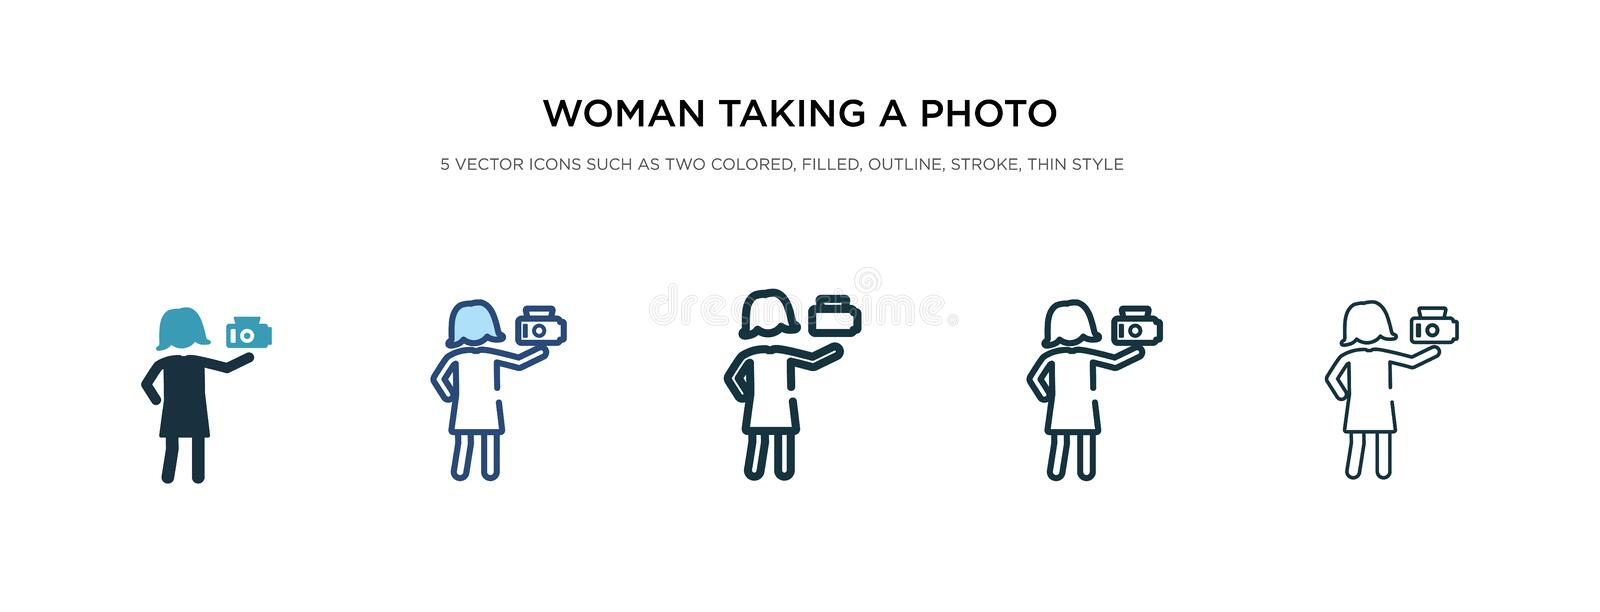 Woman taking a photo icon in different style vector illustration. two colored and black woman taking a photo vector icons designed vector illustration